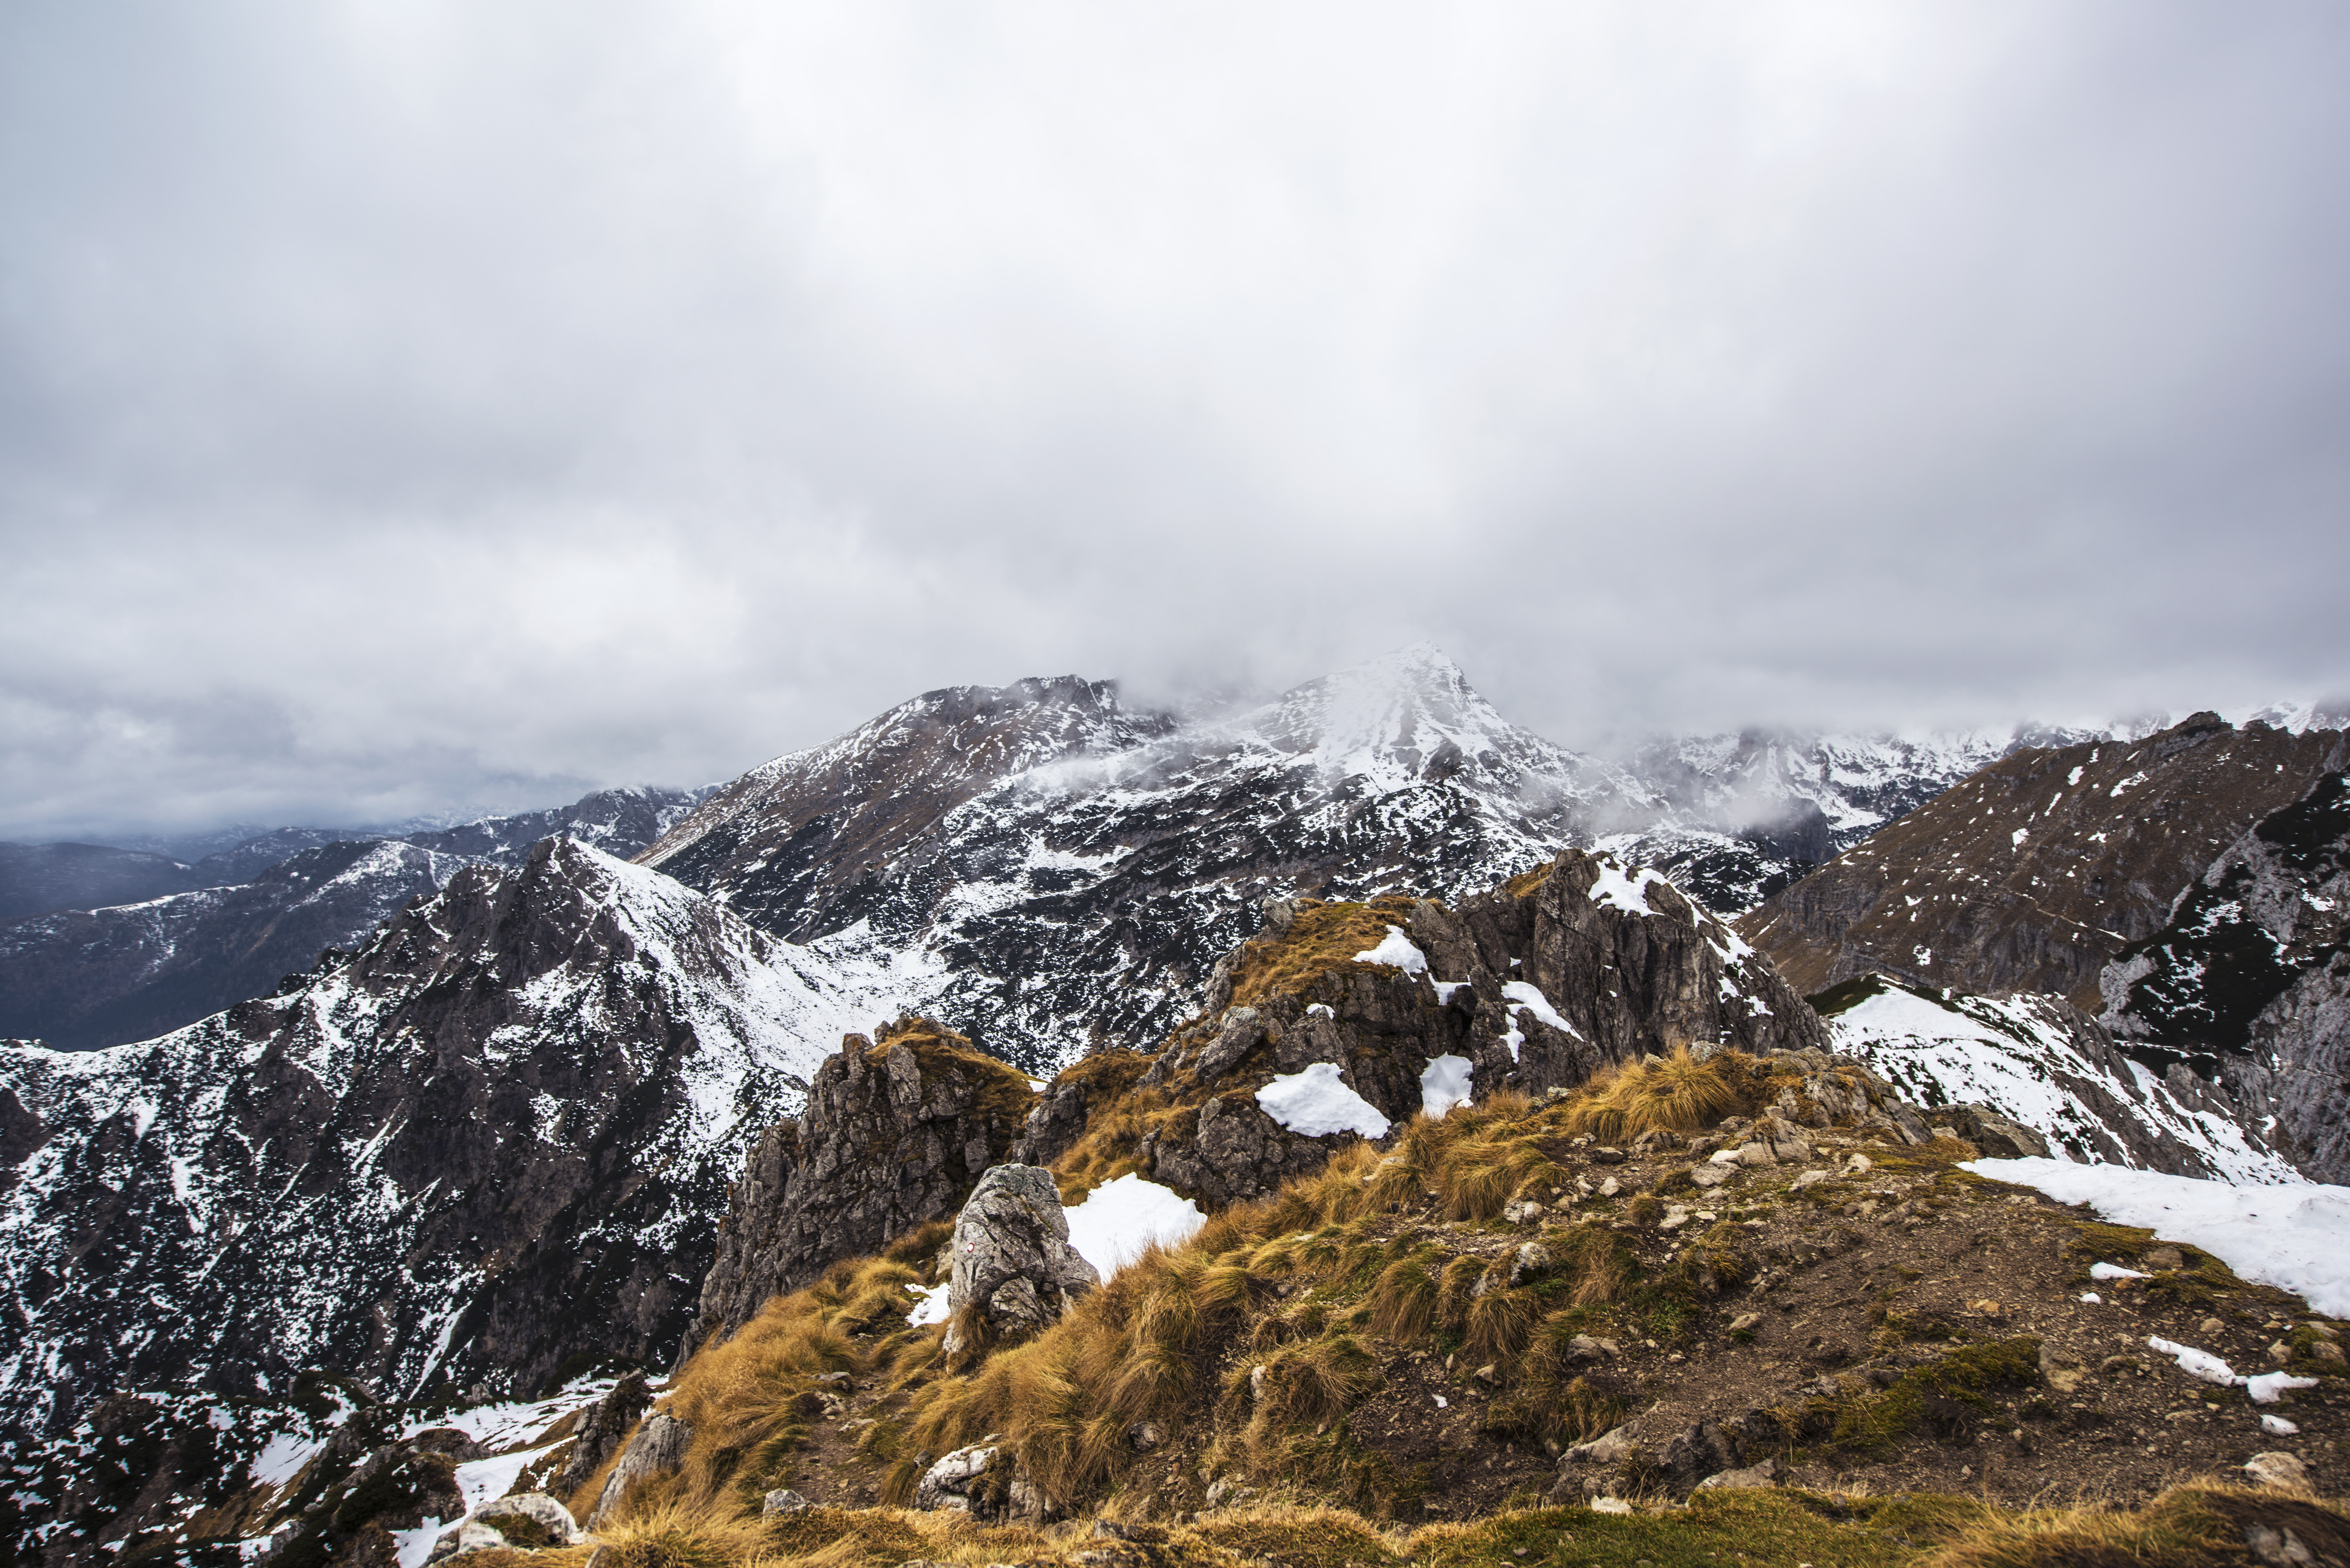 A mountainous landscape with jagged snowy ridges enveloped by thick clouds